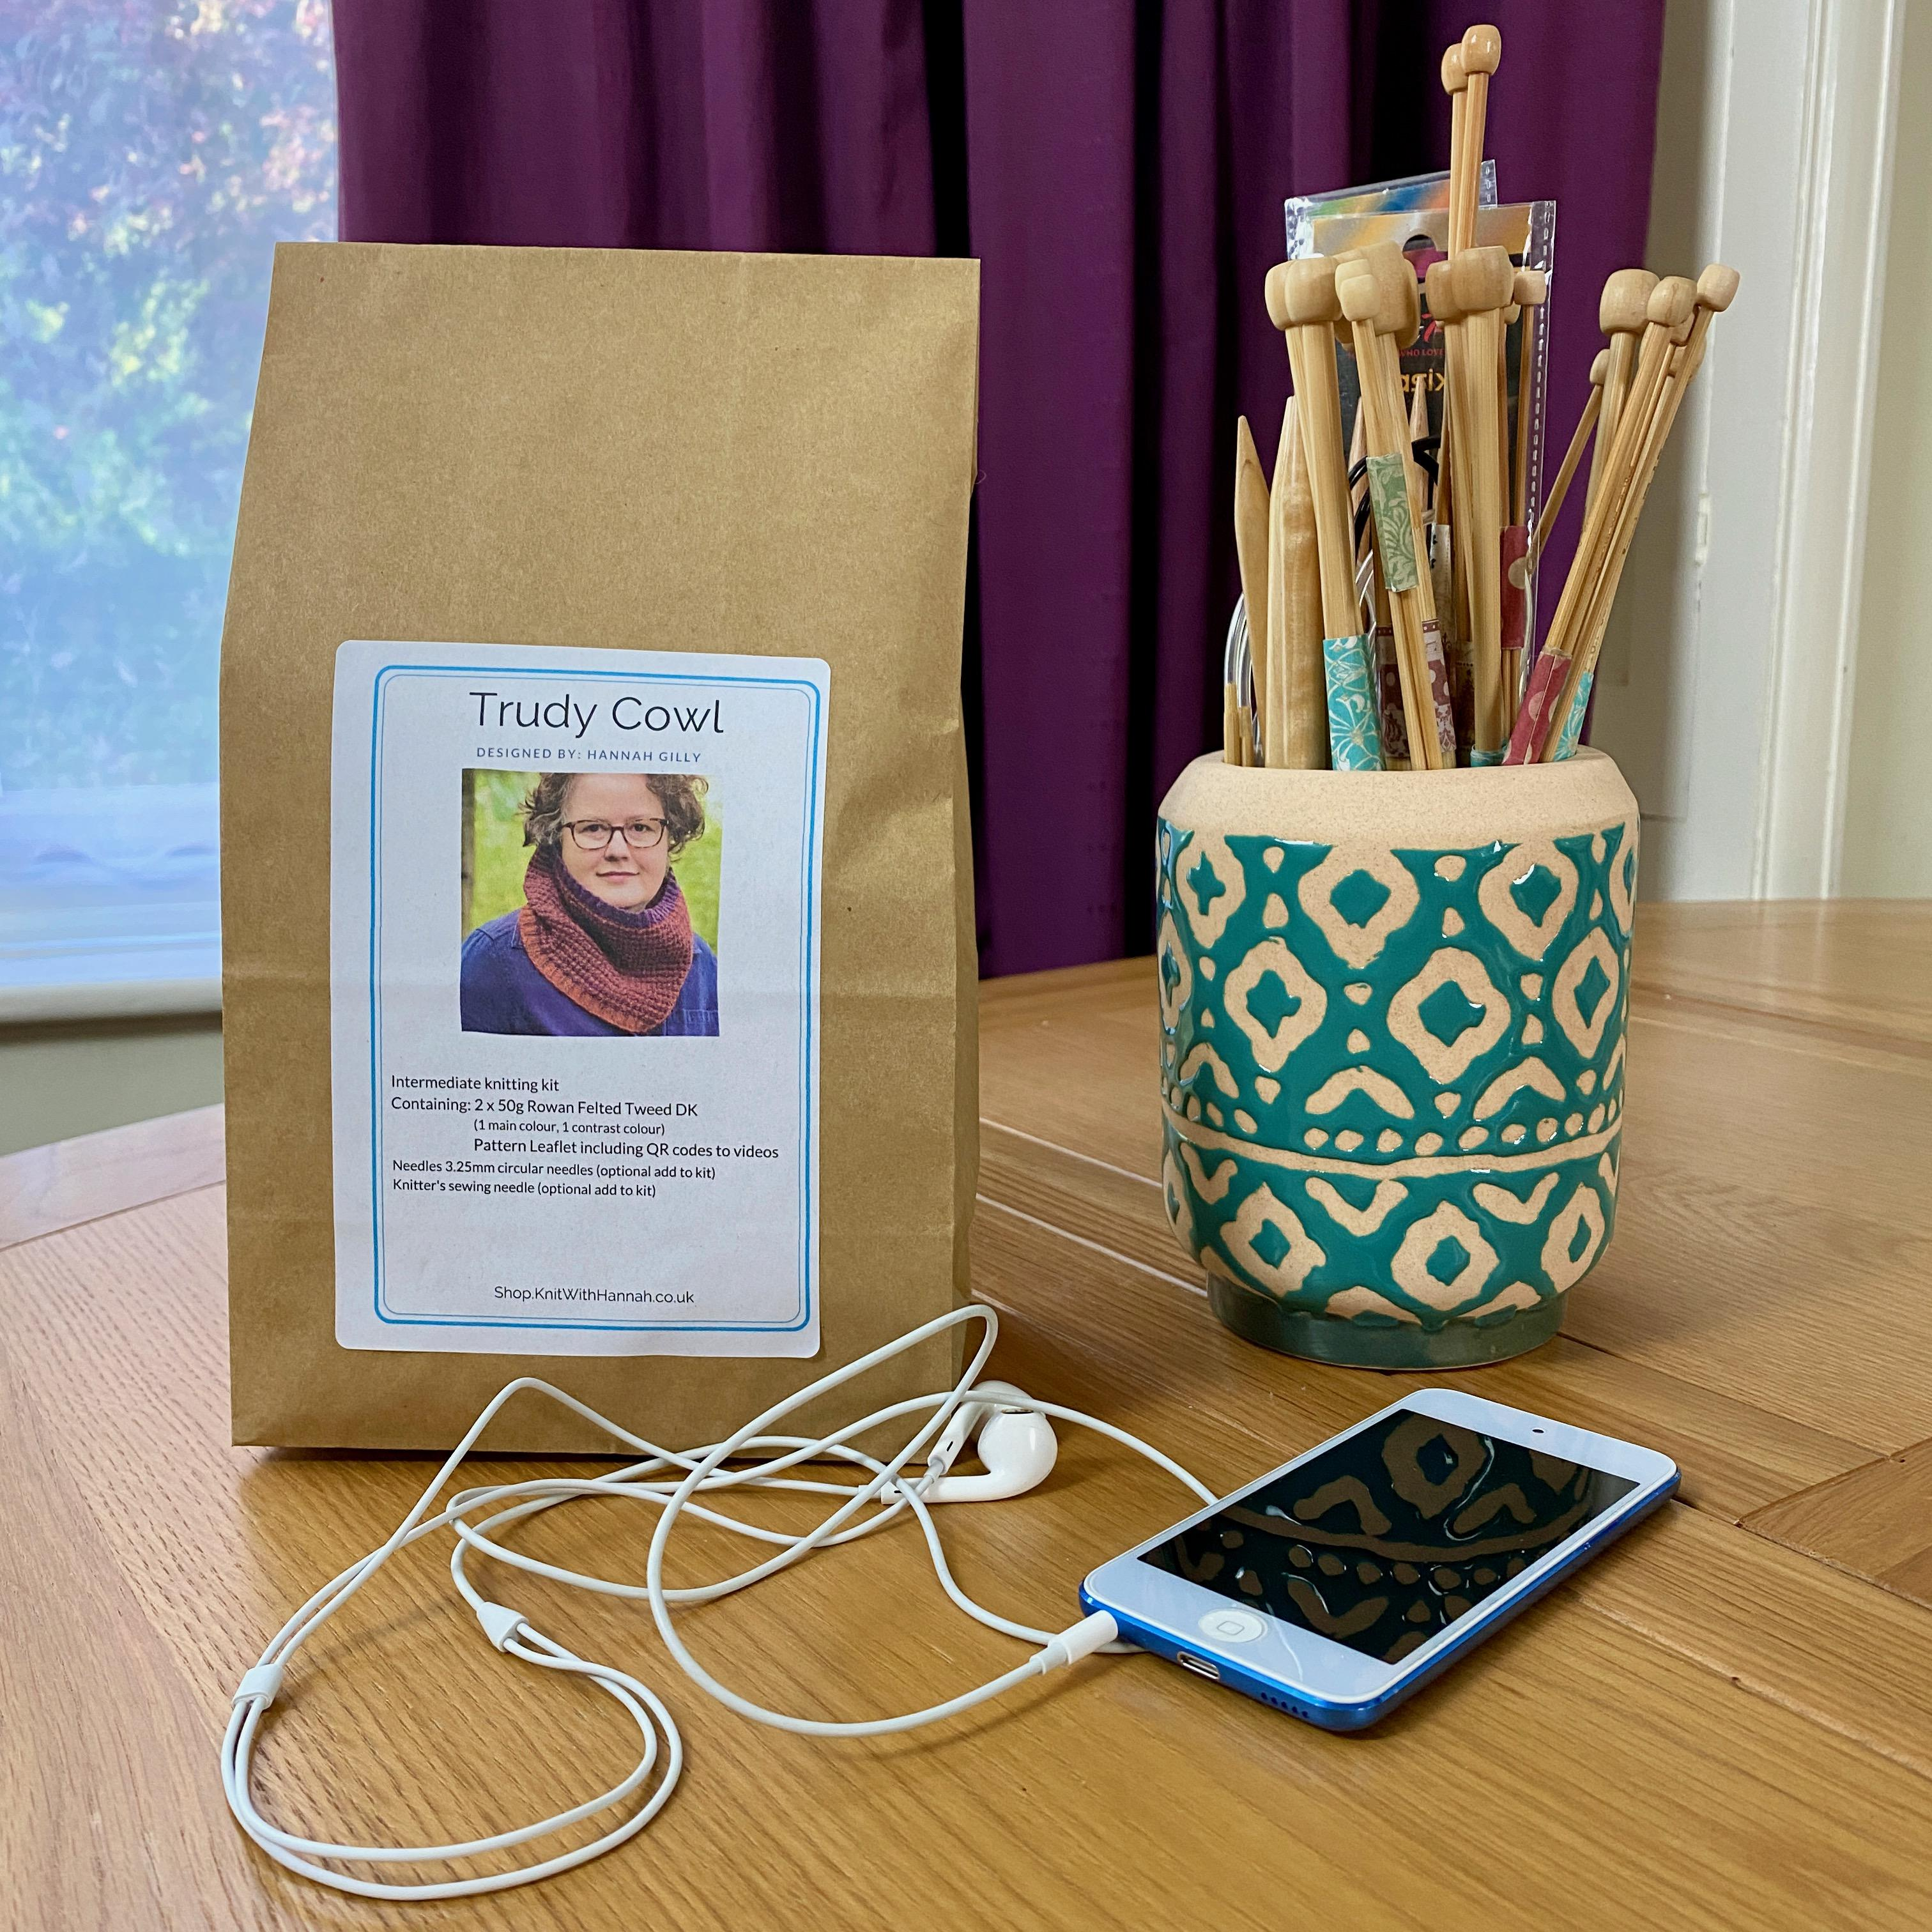 Trudy Cowl Knitting Kit in brown paper bag with jar of knitting needles and iPod